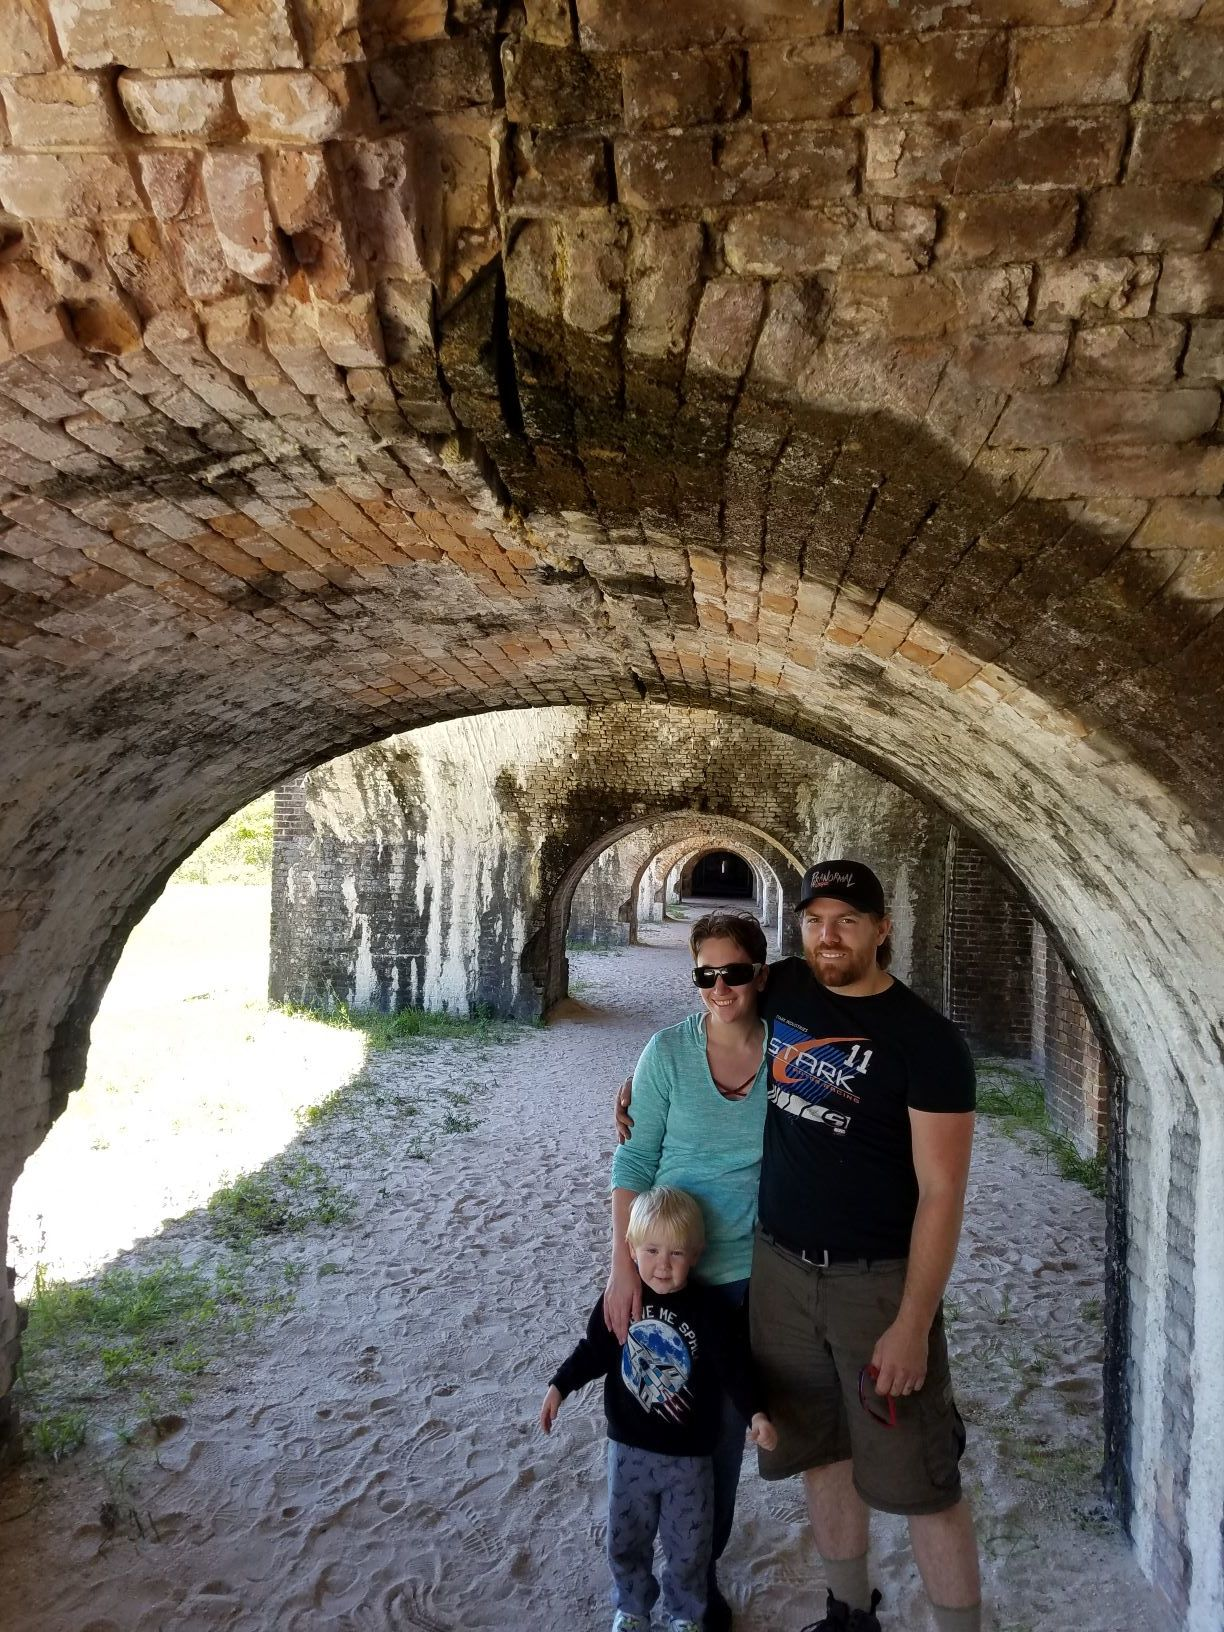 Amy and her family visited Fort Pickens in Pensacola, FL!